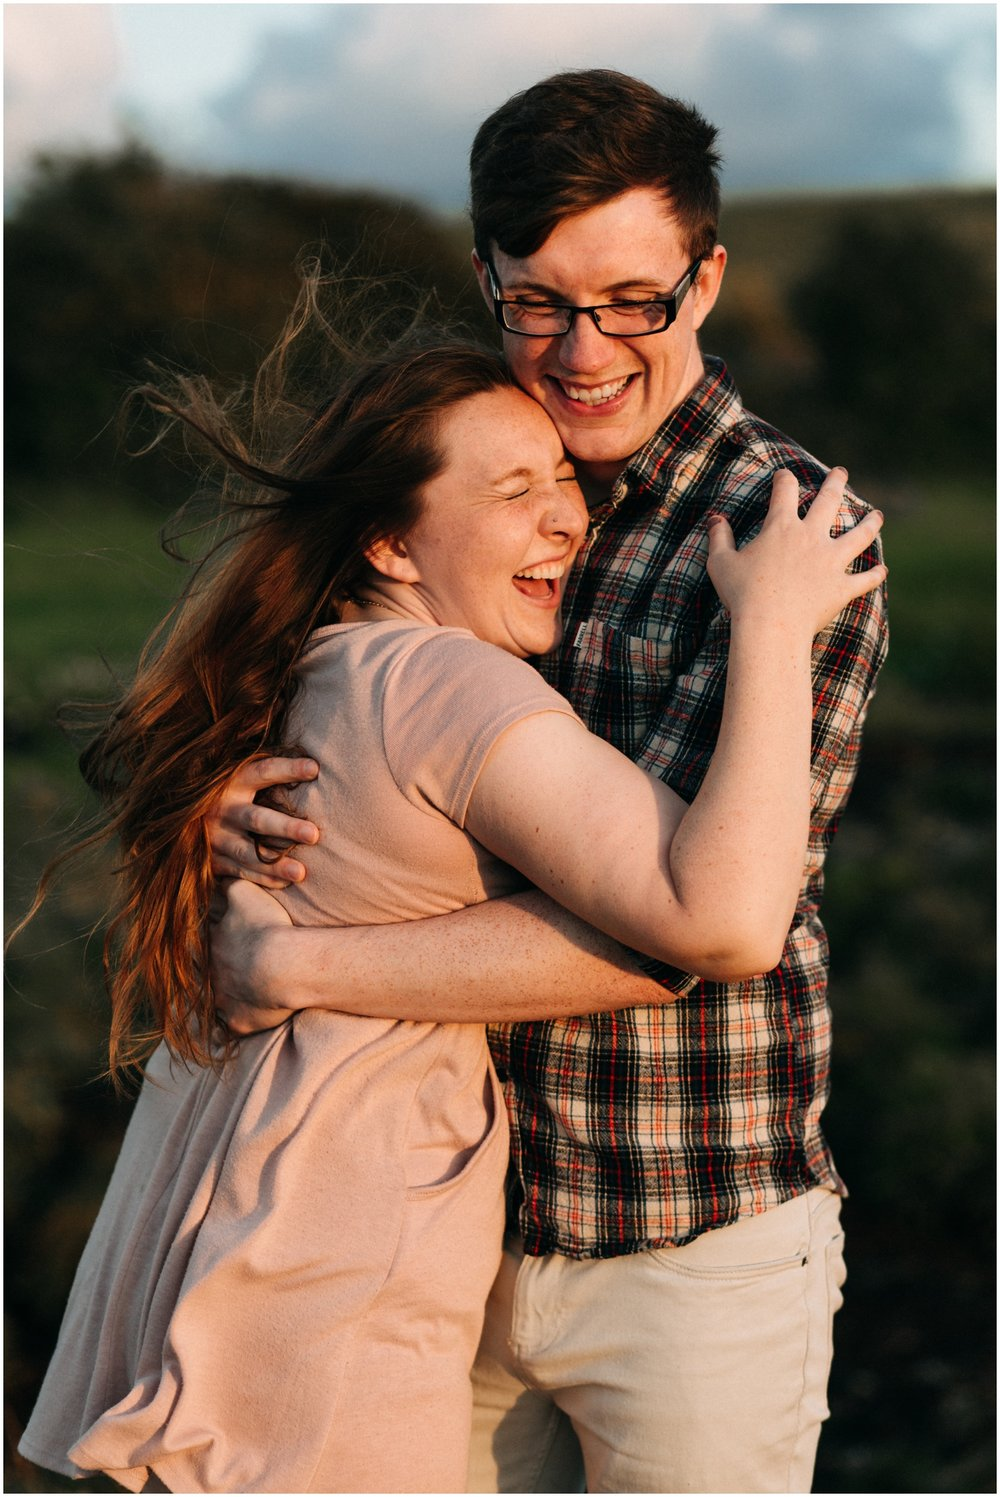 ireland_engagement_adventure_session_irish_couple_international_photographer_taylor_powers__0009.jpg